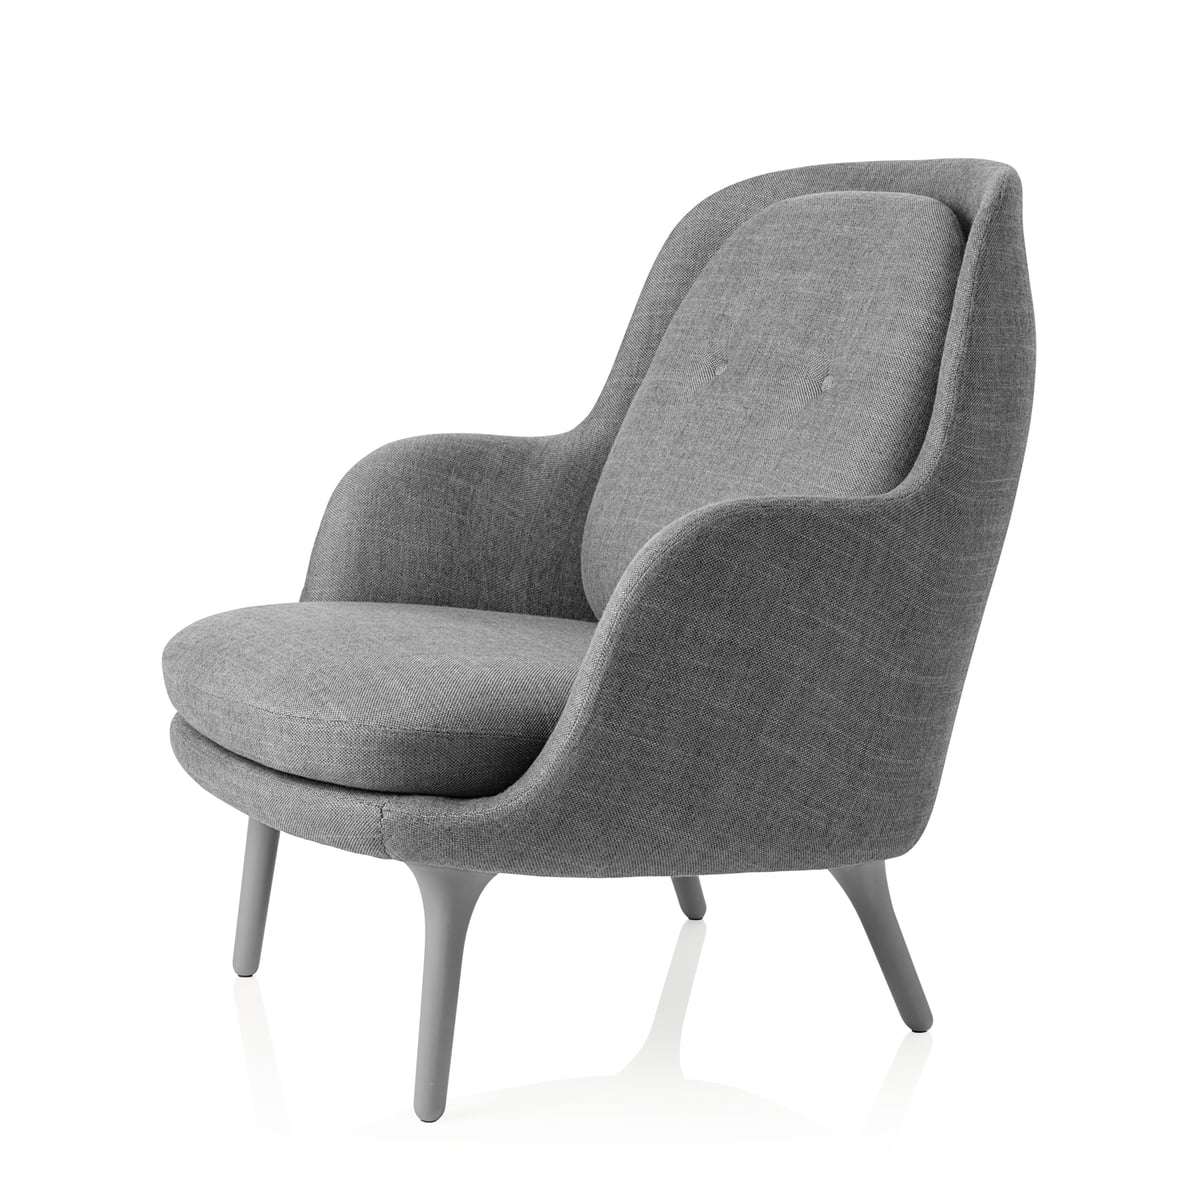 Strandmon Sessel Ikea Fri Sessel Von Fritz Hansen Im Shop